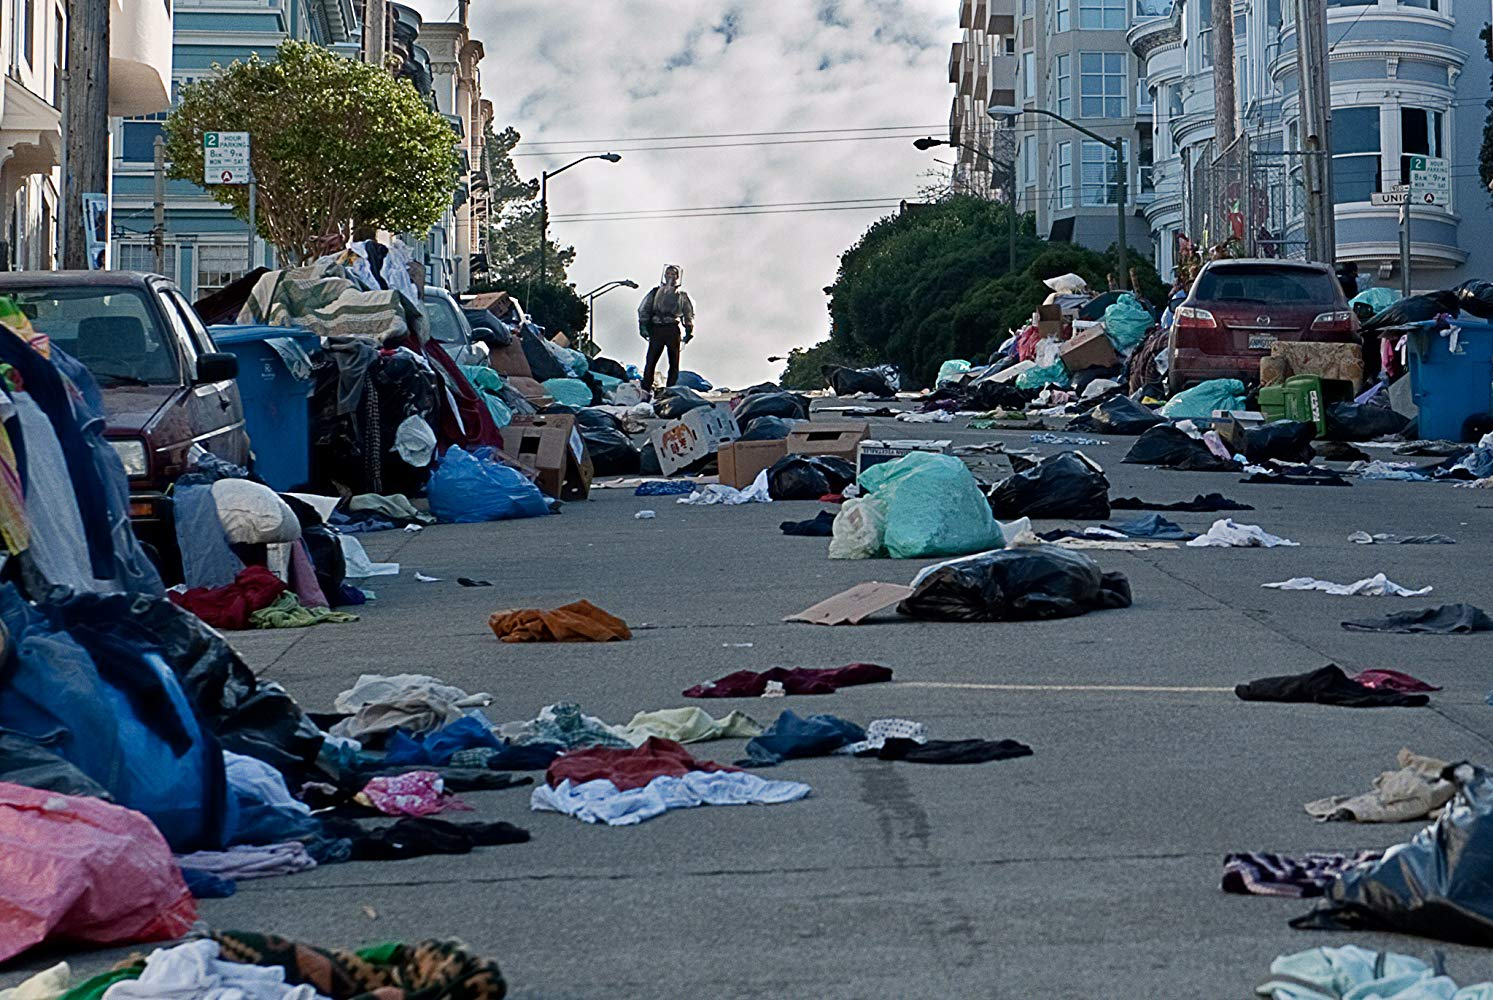 A plague devastated San Francisco in Contagion (2011)